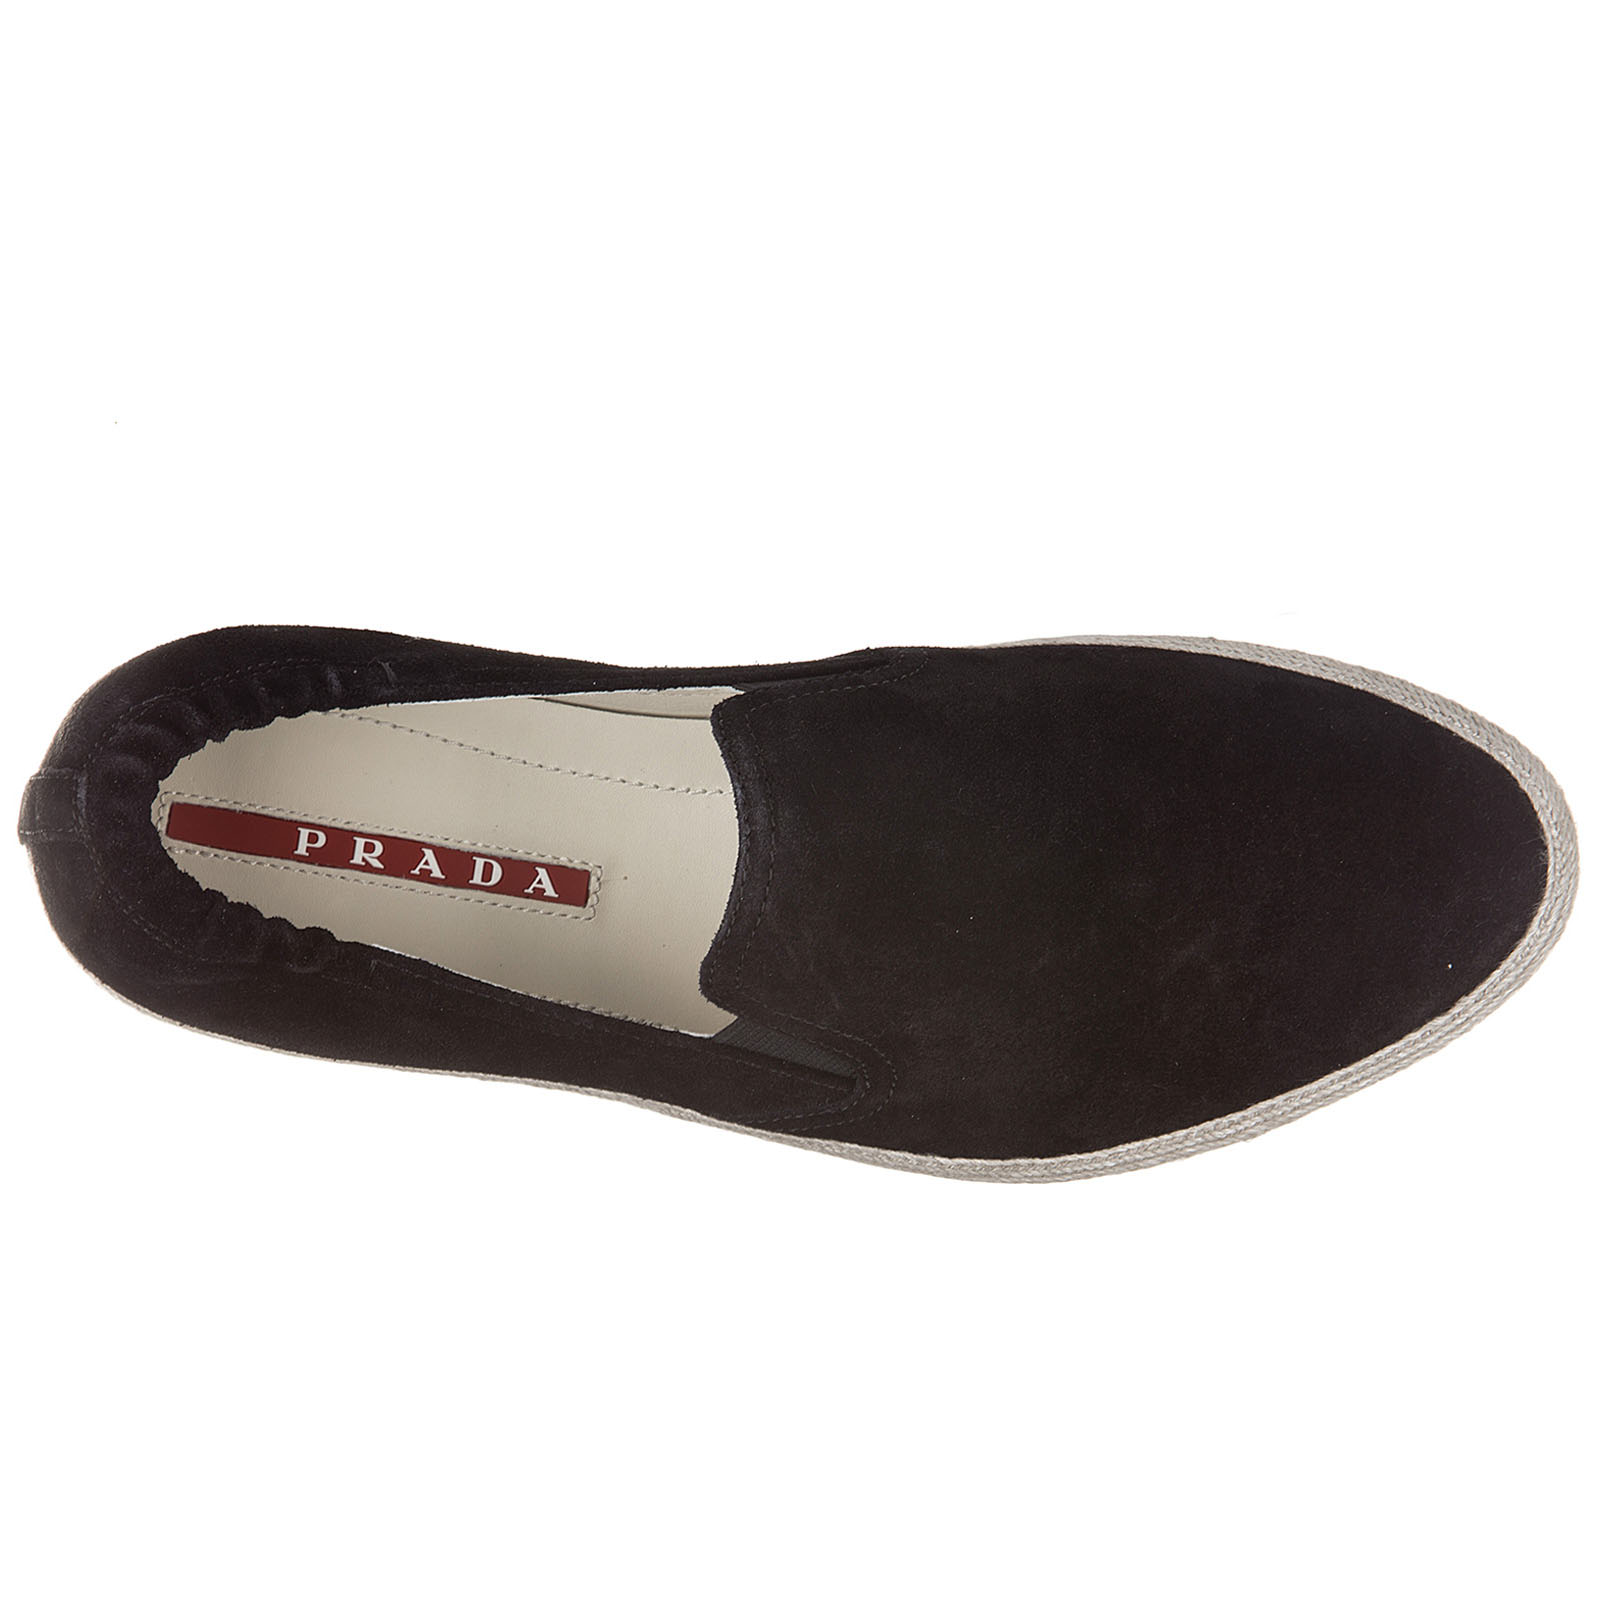 Herren wildleder slip on slipper sneakers